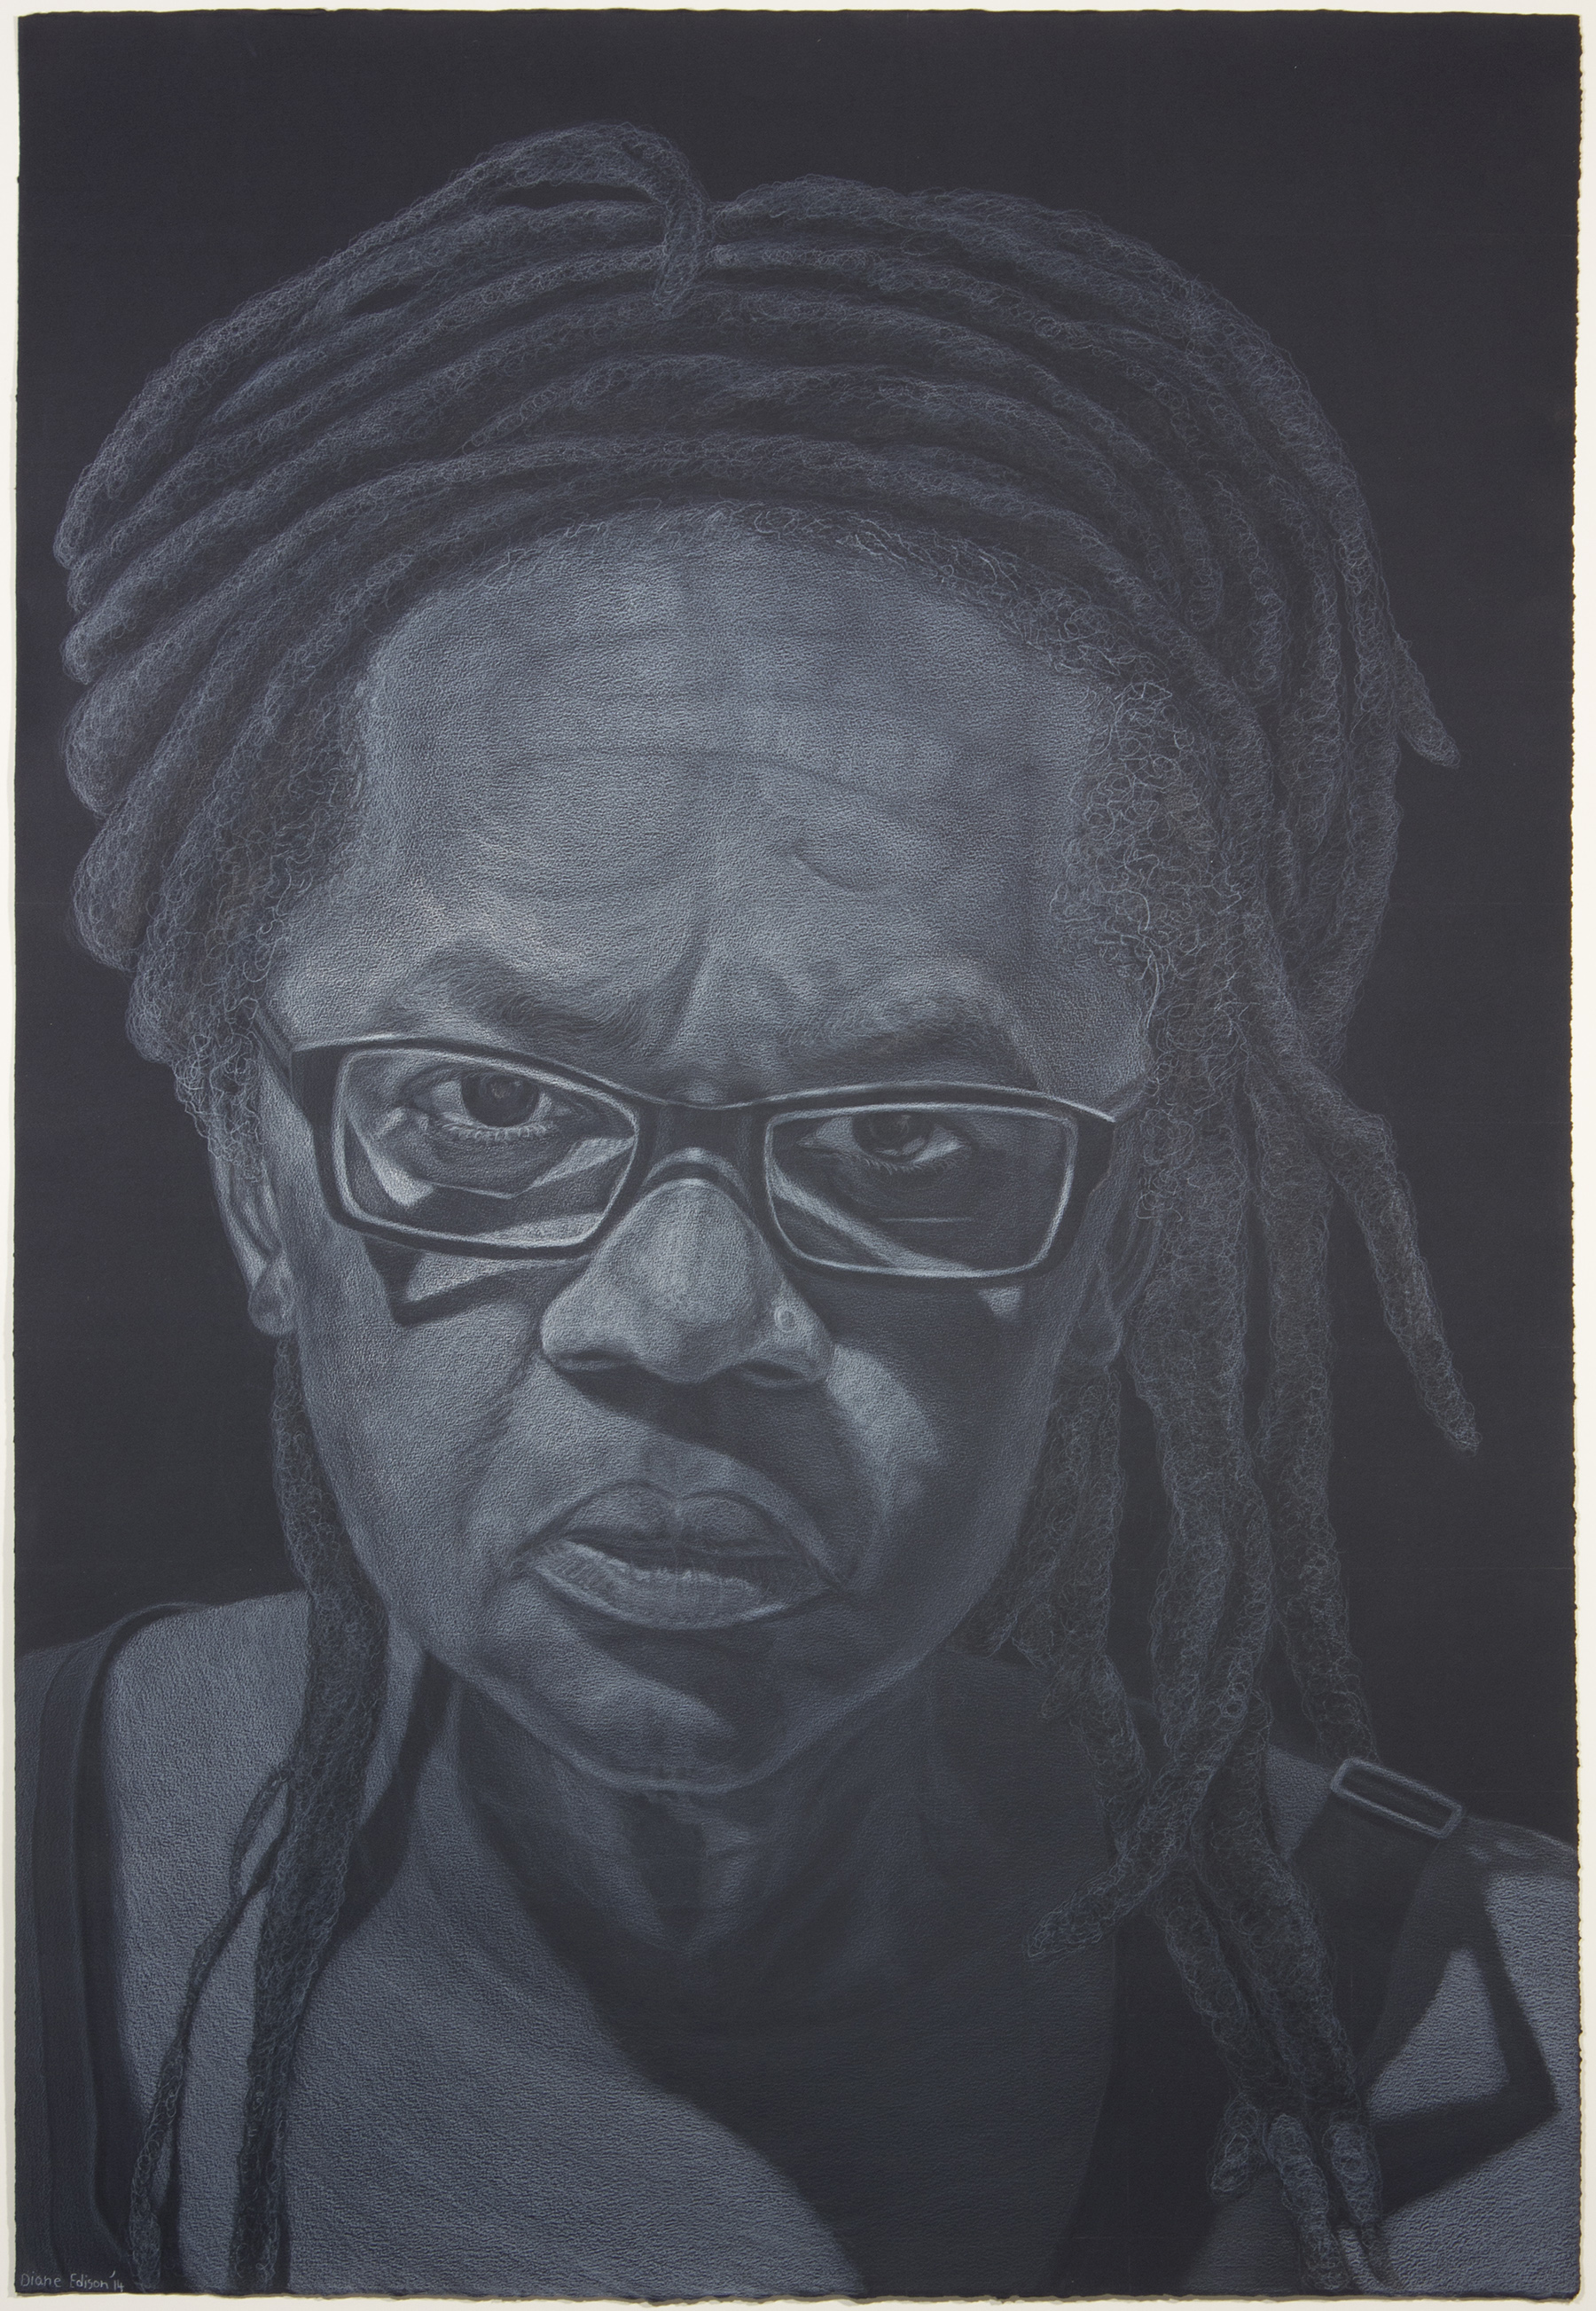 """Self Portrait """"What I See"""", gray color pencil on black paper"""